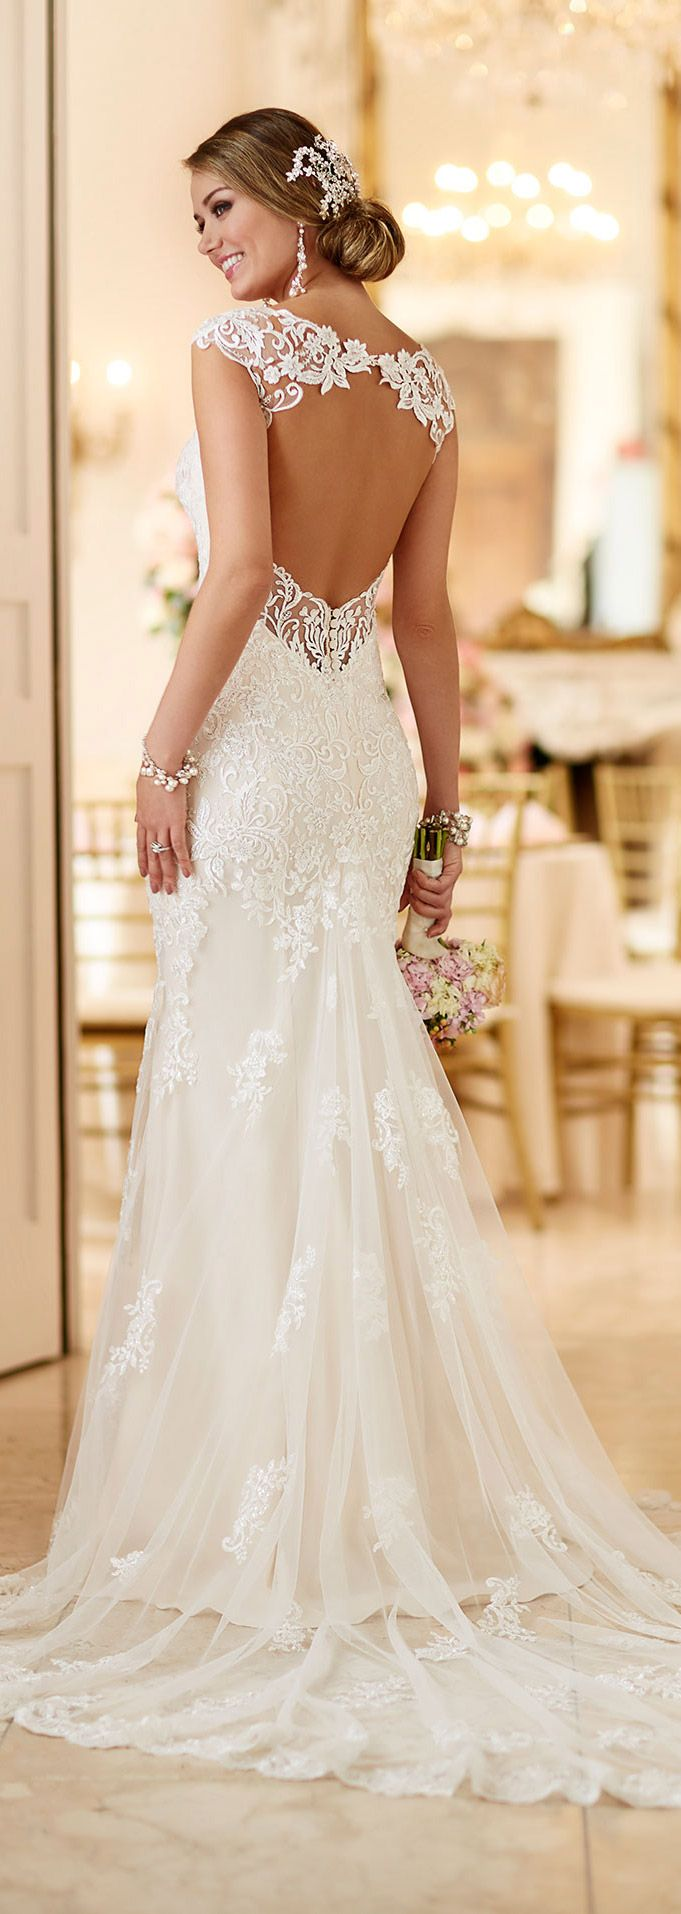 Lovely LUSAN MANDONGUS bridal wedding dresses lace strap low open back slim cut sheath